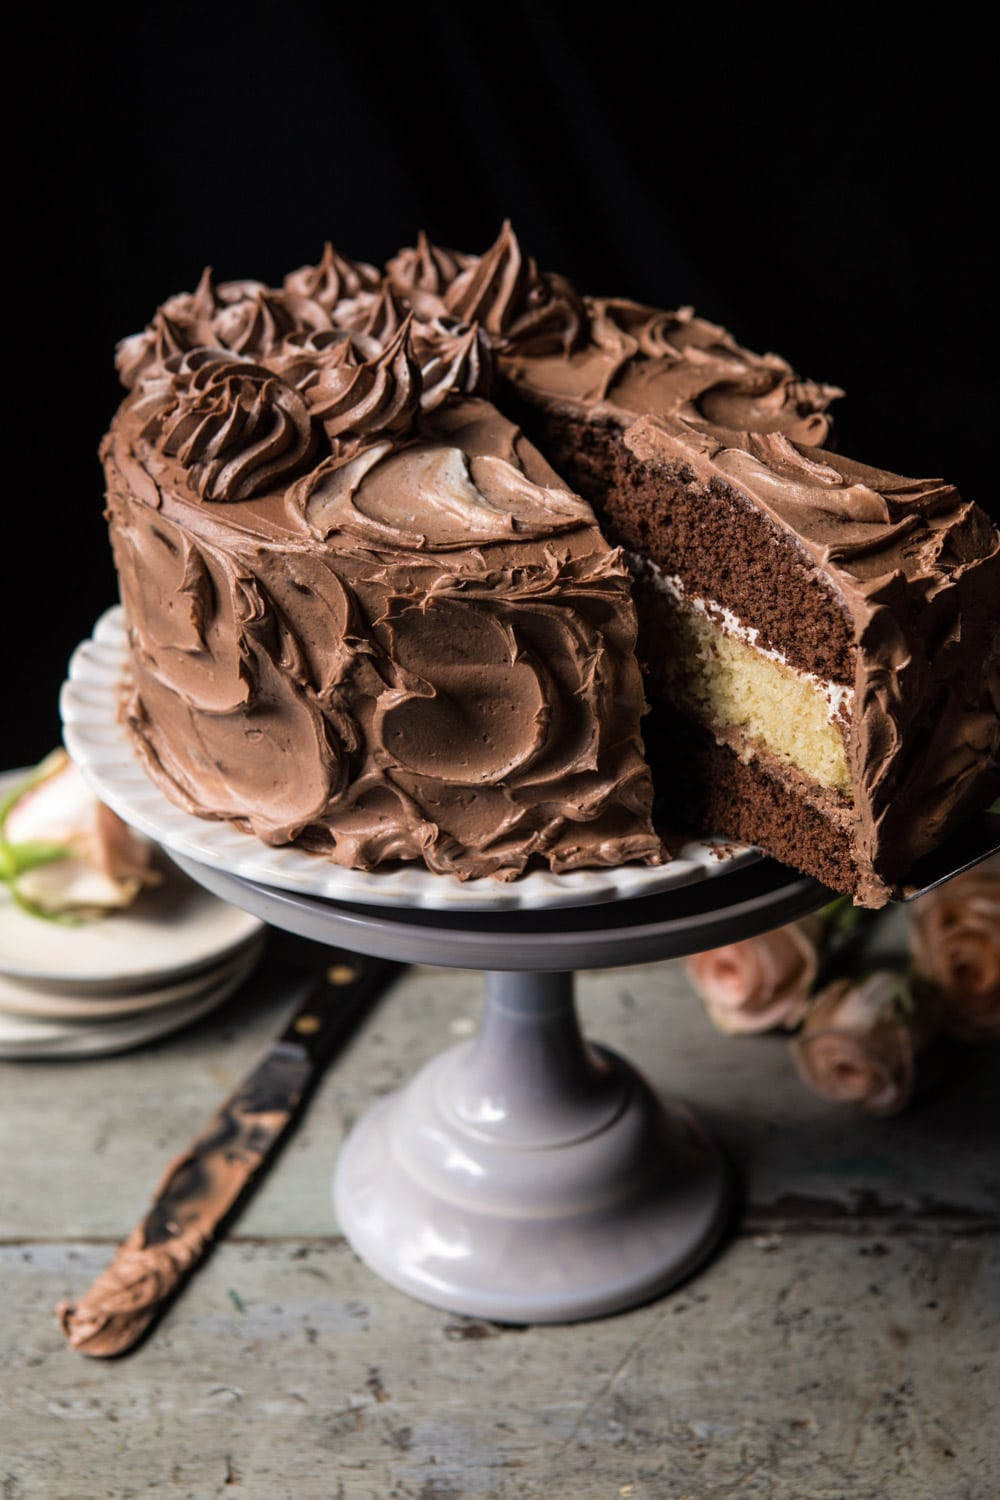 Best ideas about Birthday Cake Pics . Save or Pin Better To her Chocolate Vanilla Birthday Cake Half Now.